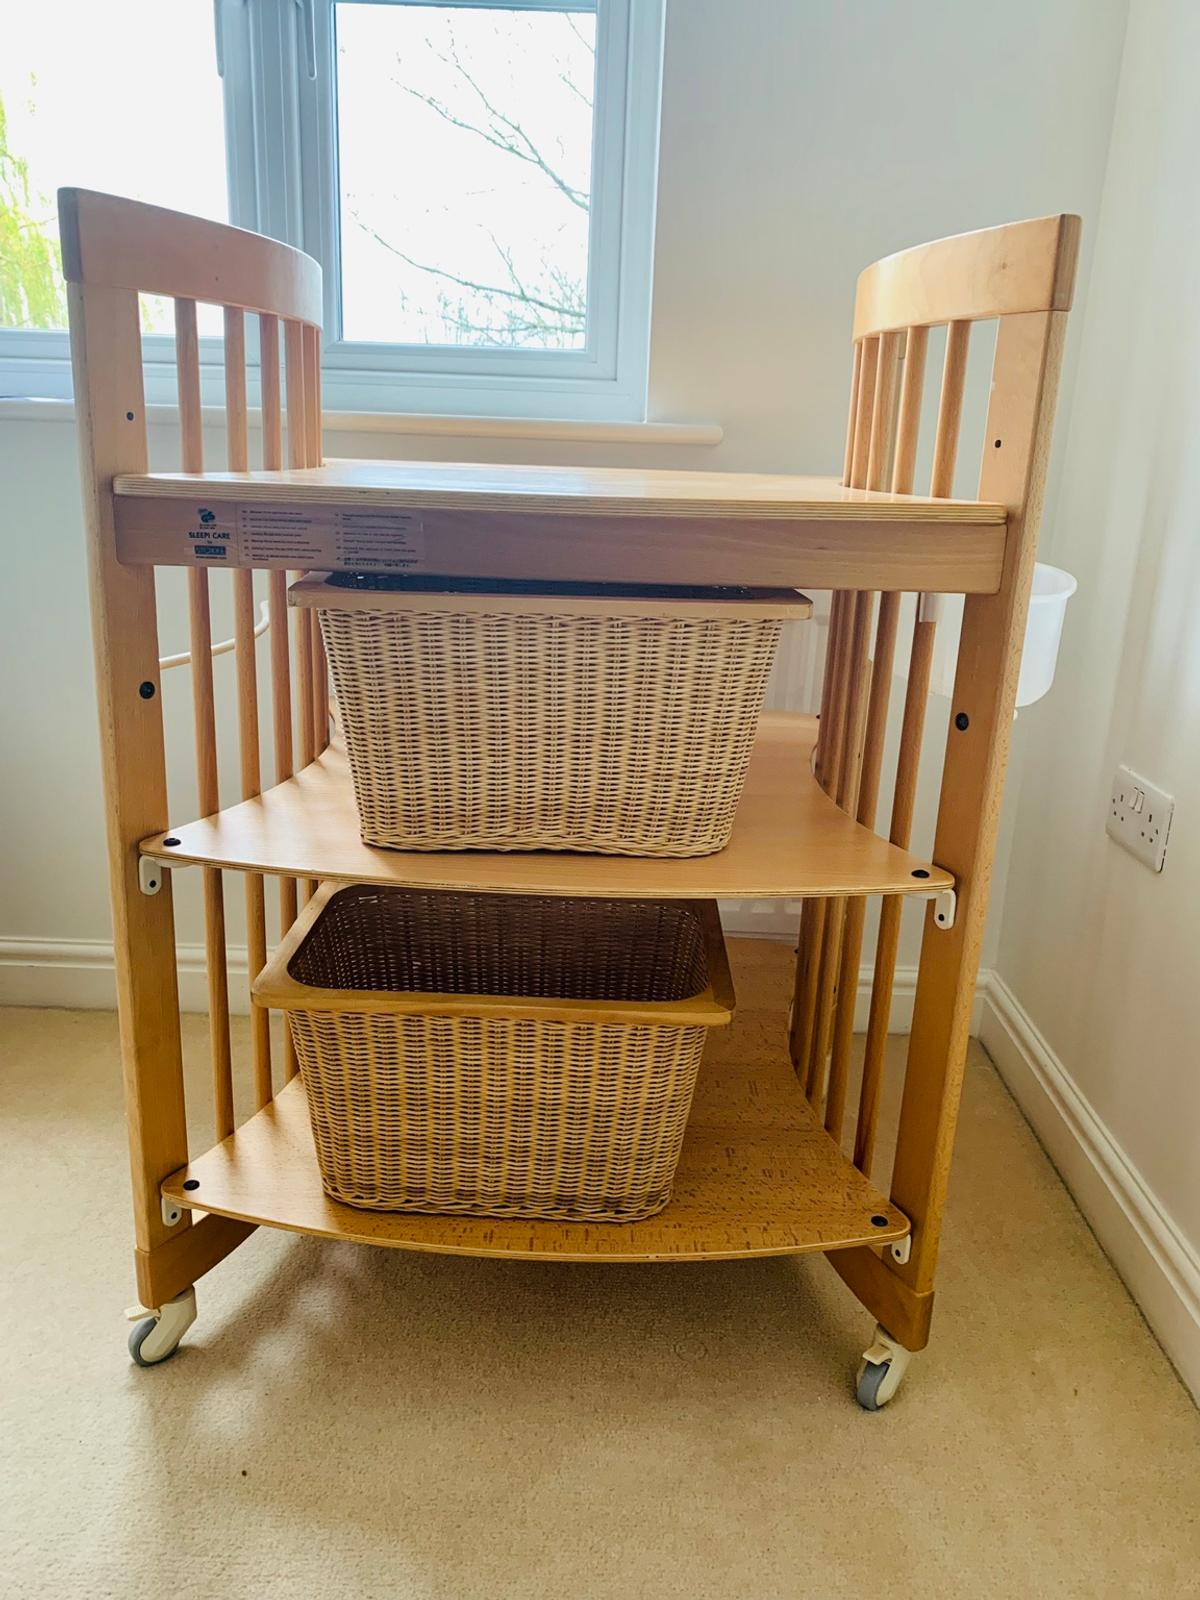 Remarkable Stokke Changing Table In Epping Forest For 30 00 For Sale Download Free Architecture Designs Embacsunscenecom